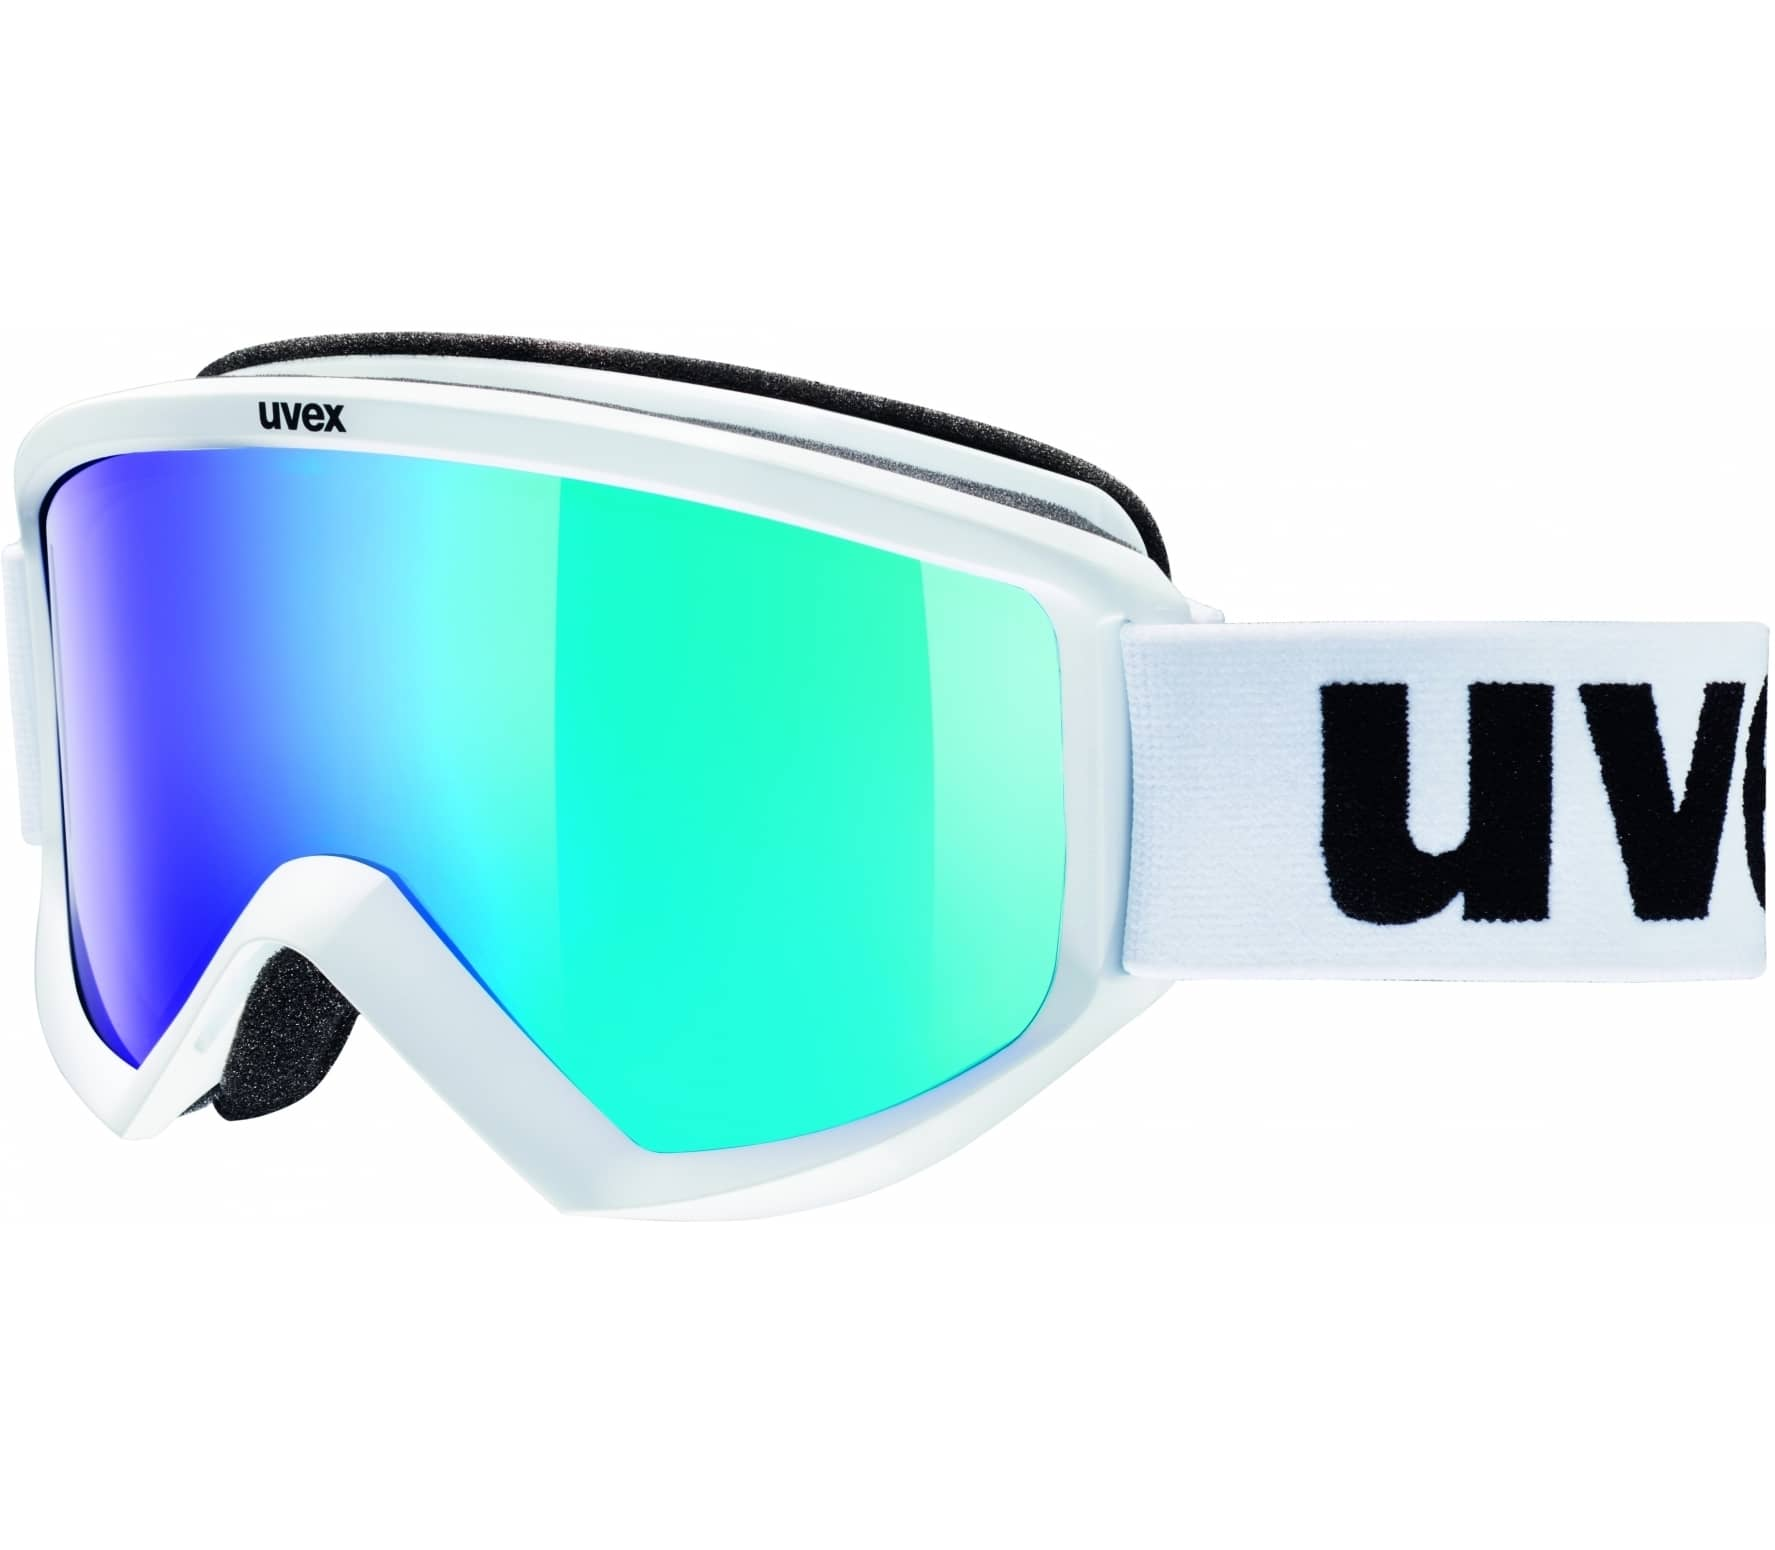 a21d2e32328 Uvex - Fire Mirror ski goggles (white) - buy it at the Keller Sports ...